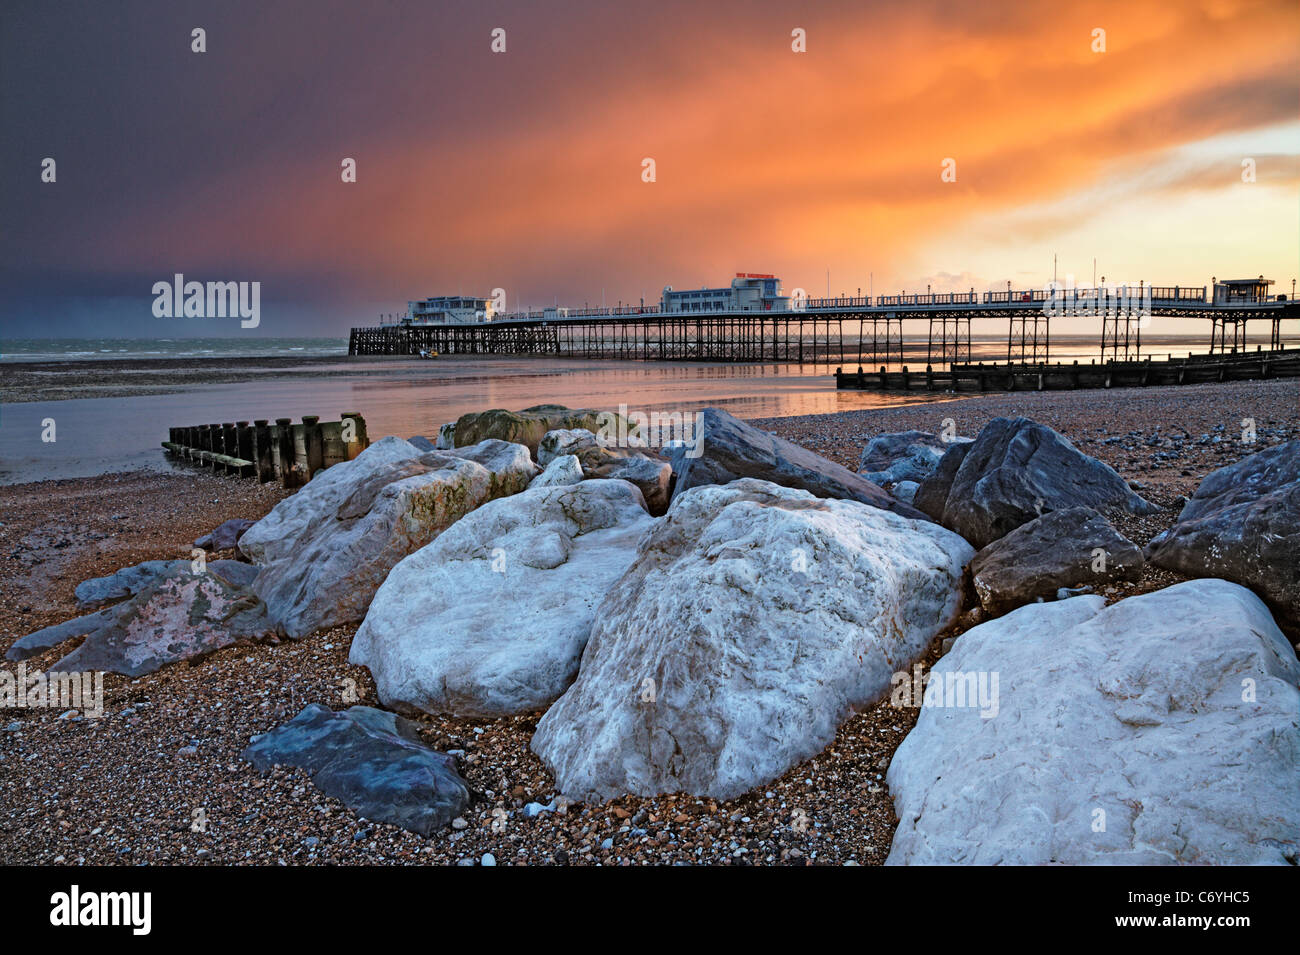 Storm clouds over Worthing Pier at Sunset, West Sussex - Stock Image